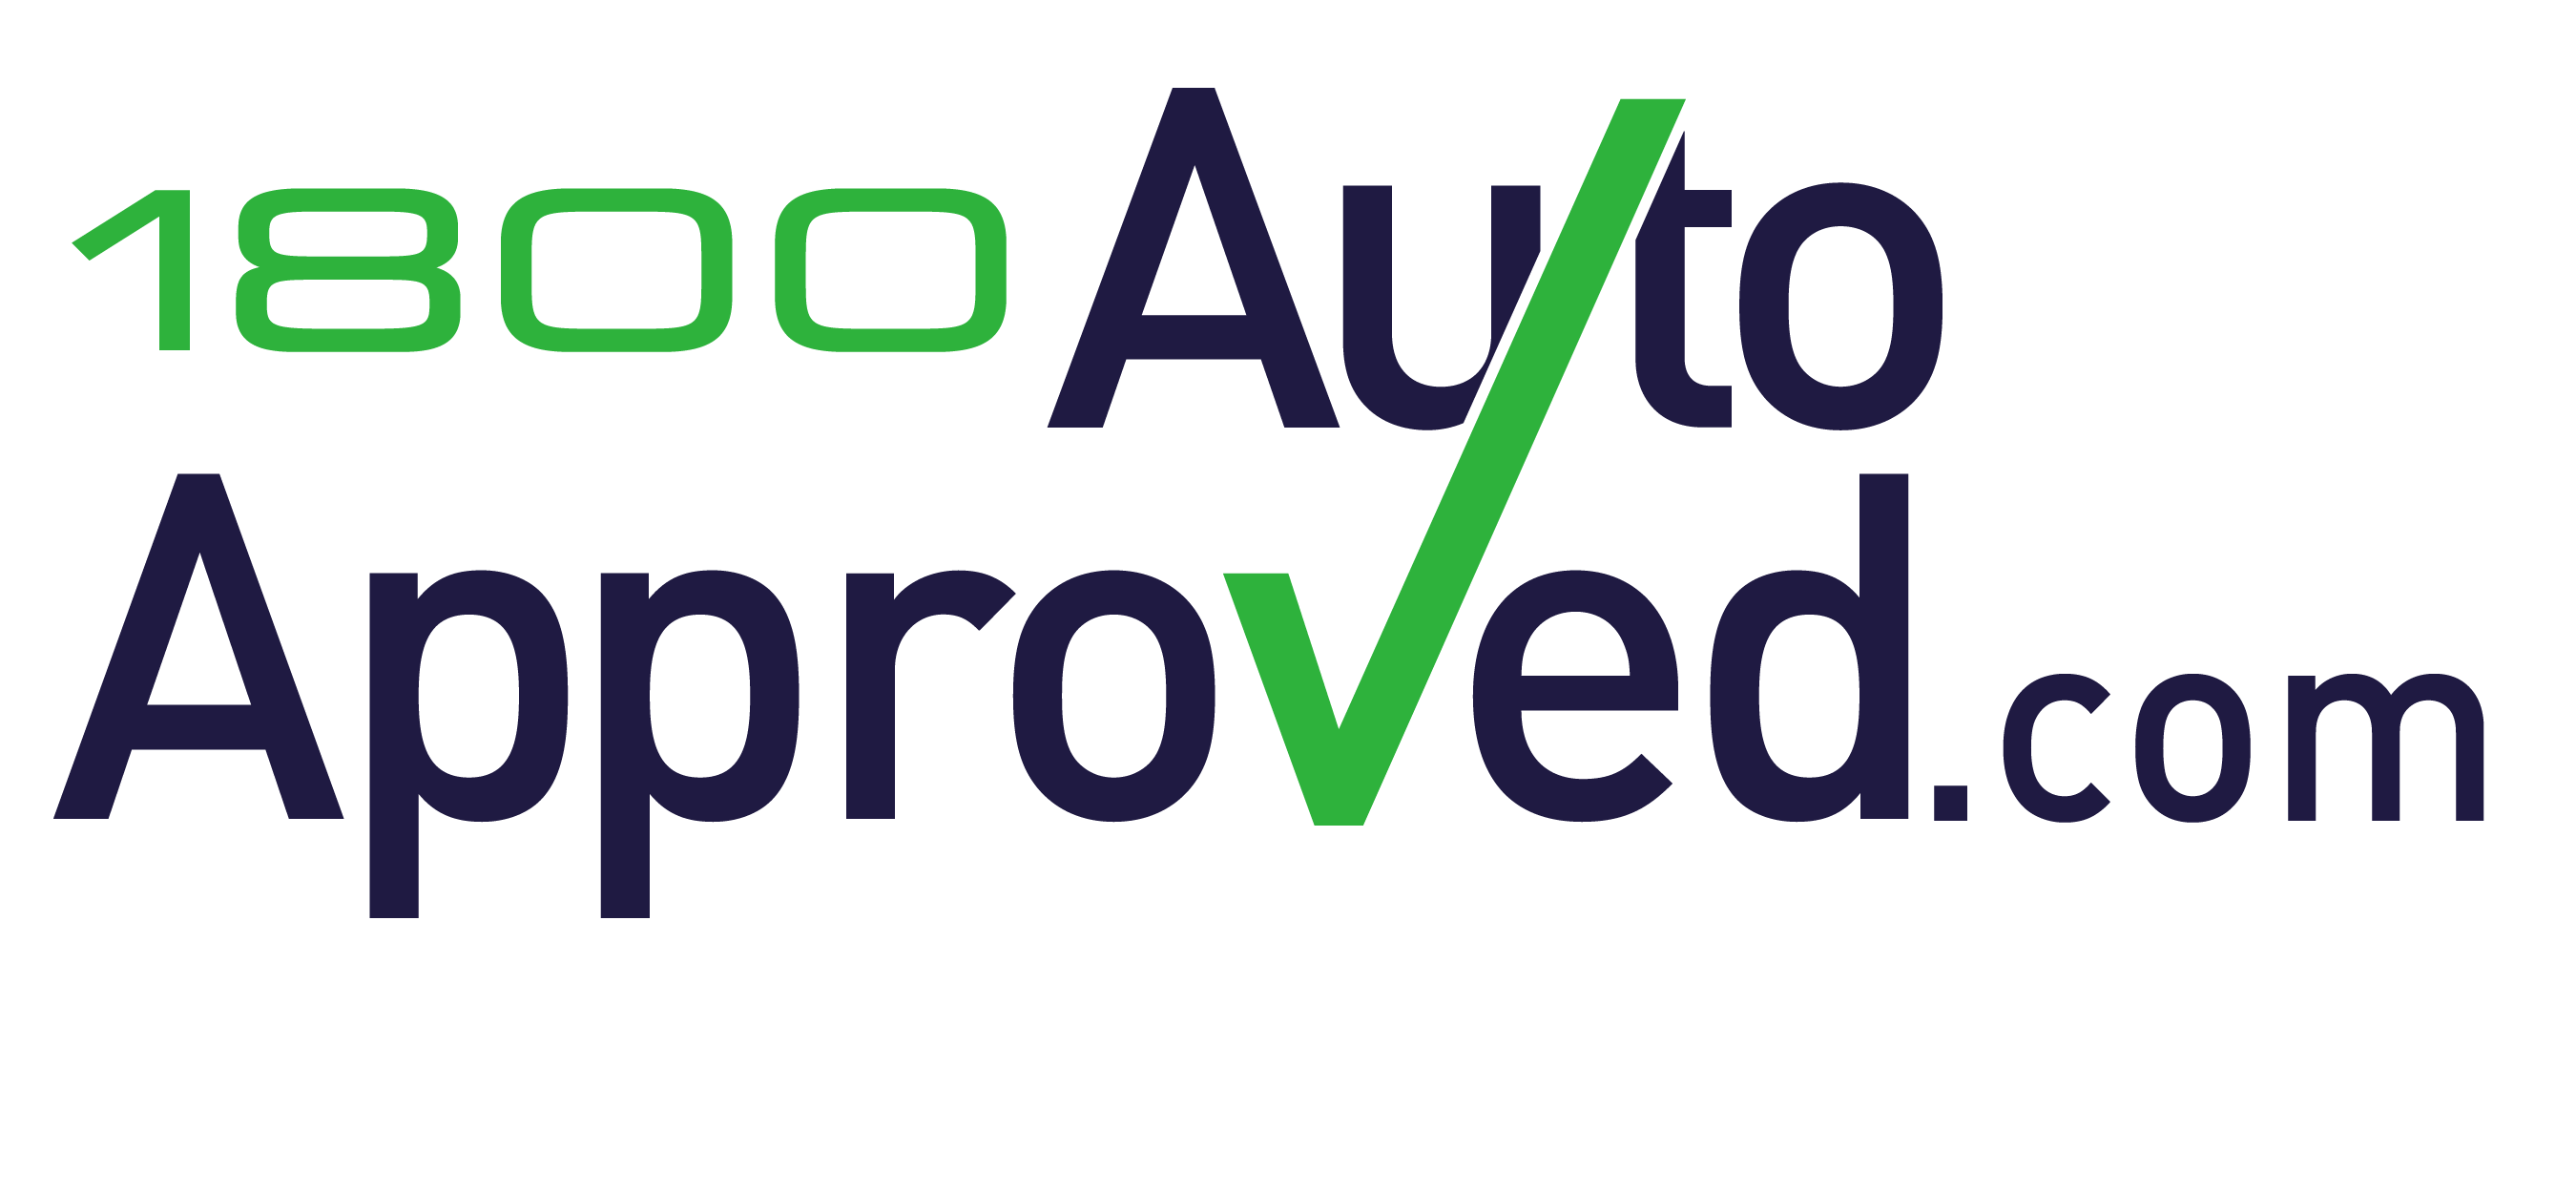 1800AutoApproved logo